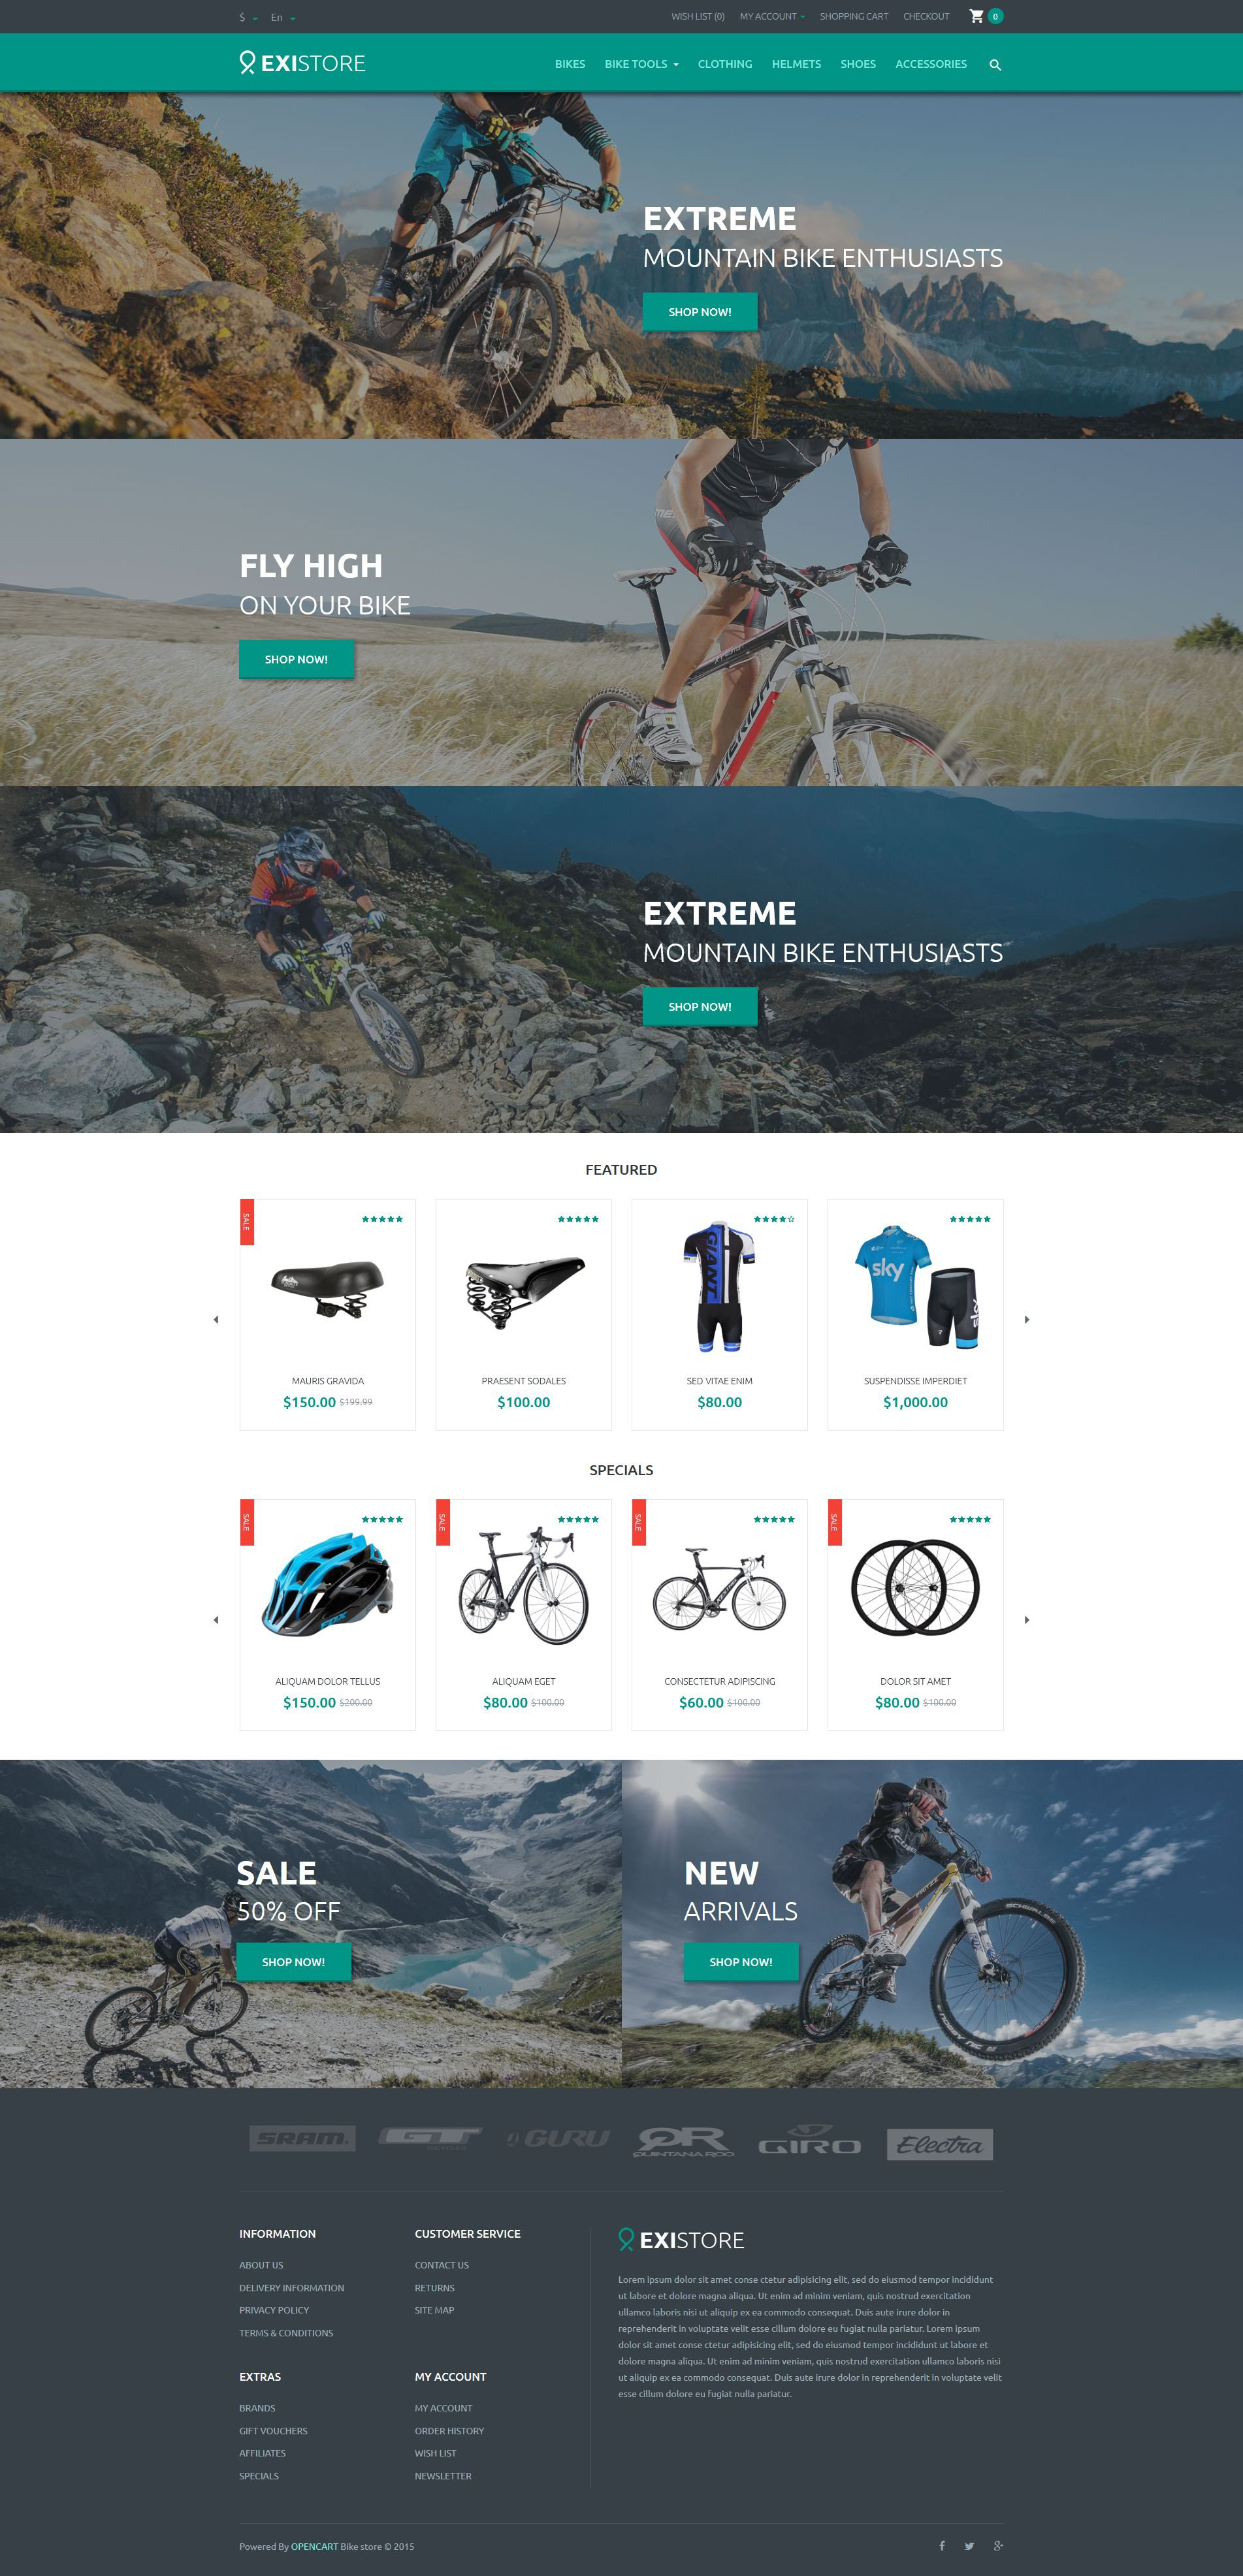 The Existore Bike Store OpenCart Design 54056, one of the best OpenCart templates of its kind (cars, most popular), also known as existore bike store OpenCart template, bikes OpenCart template, moto OpenCart template, motor store OpenCart template, helmets OpenCart template, gear OpenCart template, scooter OpenCart template, snowmobile OpenCart template, parts OpenCart template, accessories OpenCart template, tires OpenCart template, closeouts and related with existore bike store, bikes, moto, motor store, helmets, gear, scooter, snowmobile, parts, accessories, tires, closeouts, etc.